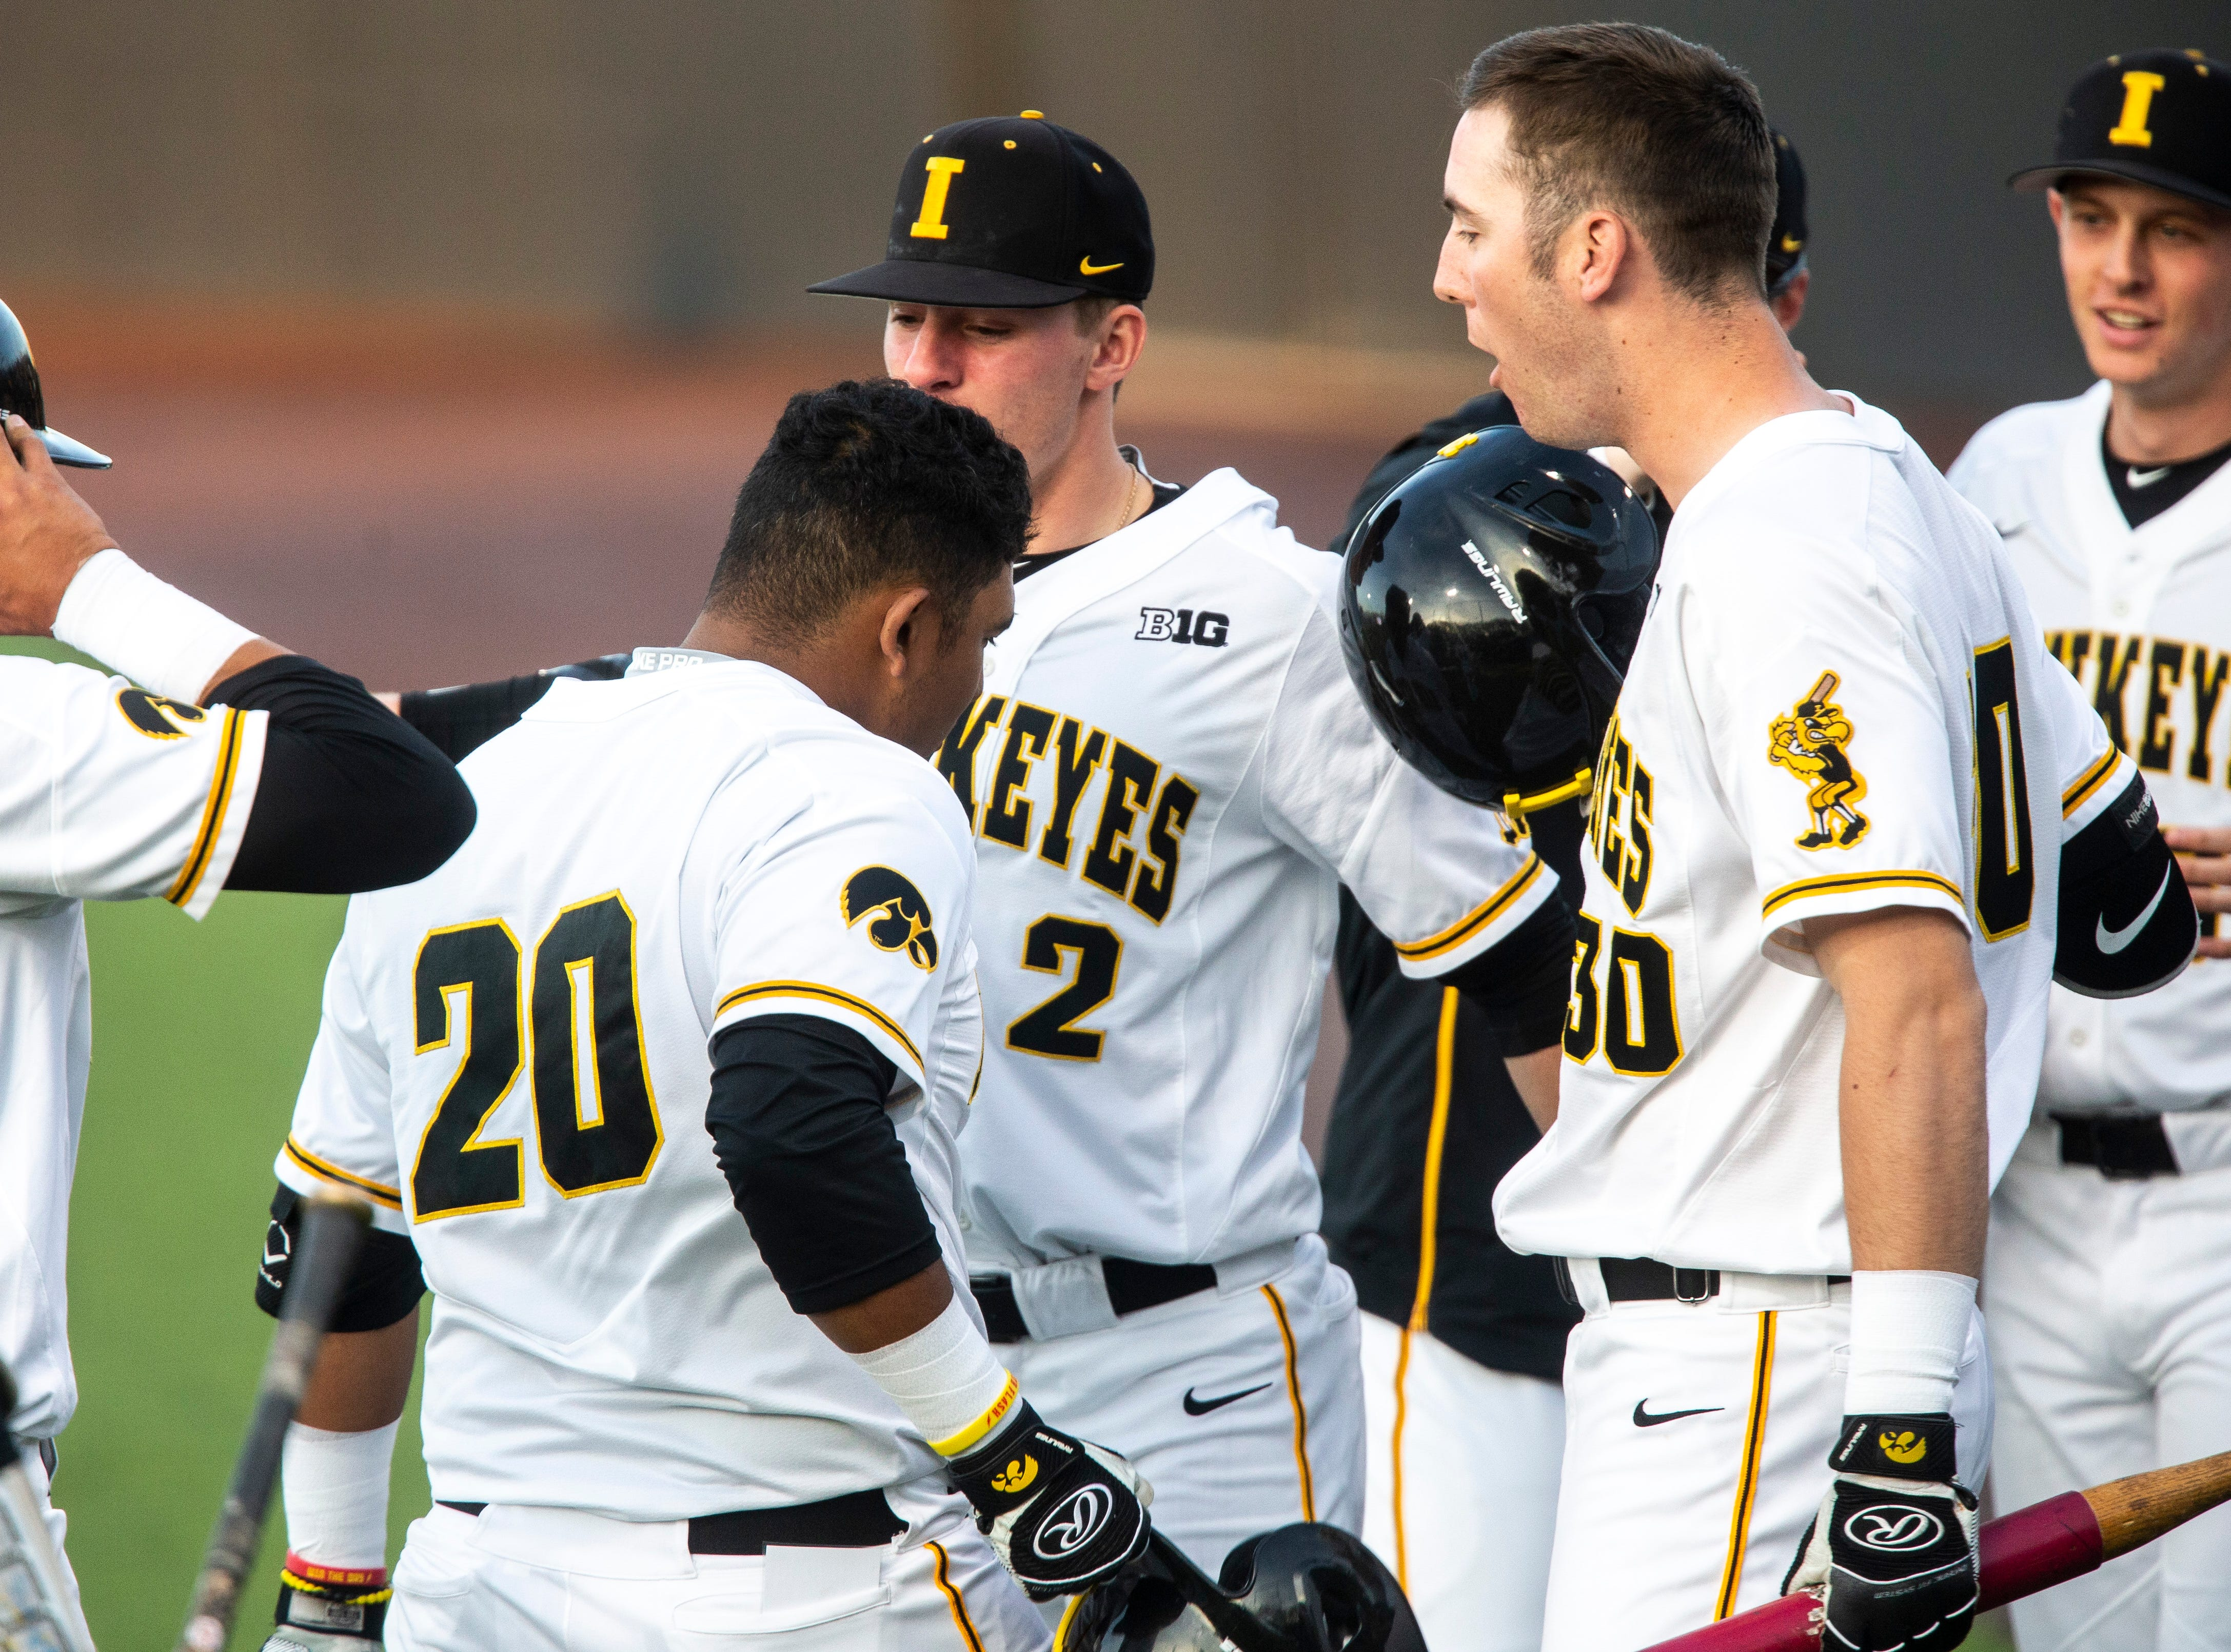 Iowa infielder Izaya Fullard (20) gets embraced by teammates Brendan Sher (2) and Connor McCaffery (30) after scoring a home run during NCAA non conference baseball game, Friday, May 3, 2019, at Duane Banks Field in Iowa City, Iowa.